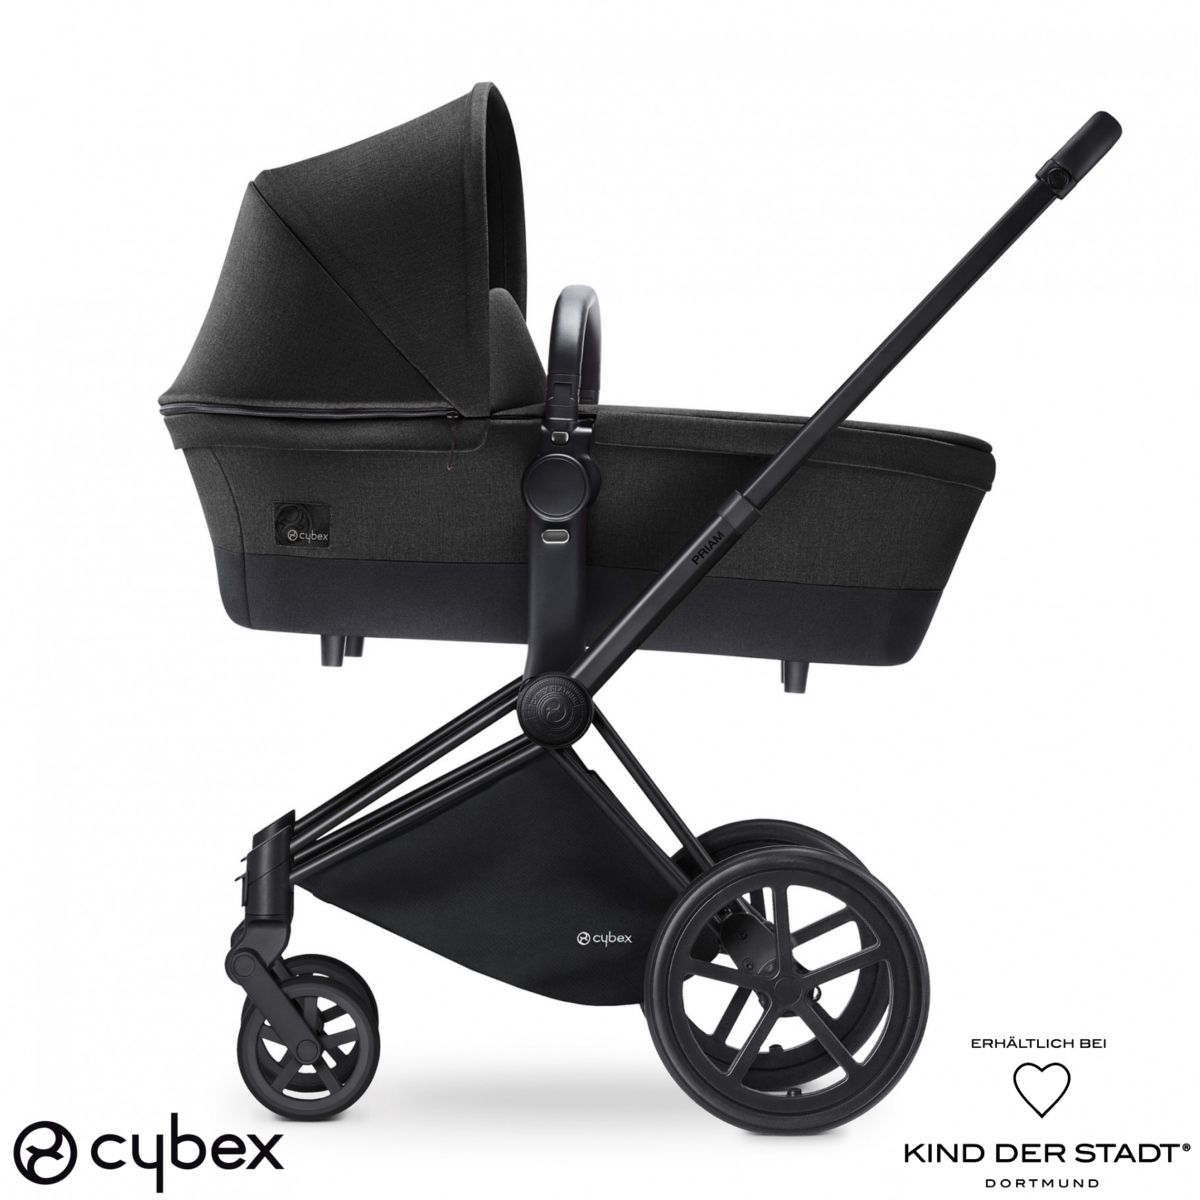 der cybex priam kinderwagen stammt aus der platinum reihe. Black Bedroom Furniture Sets. Home Design Ideas